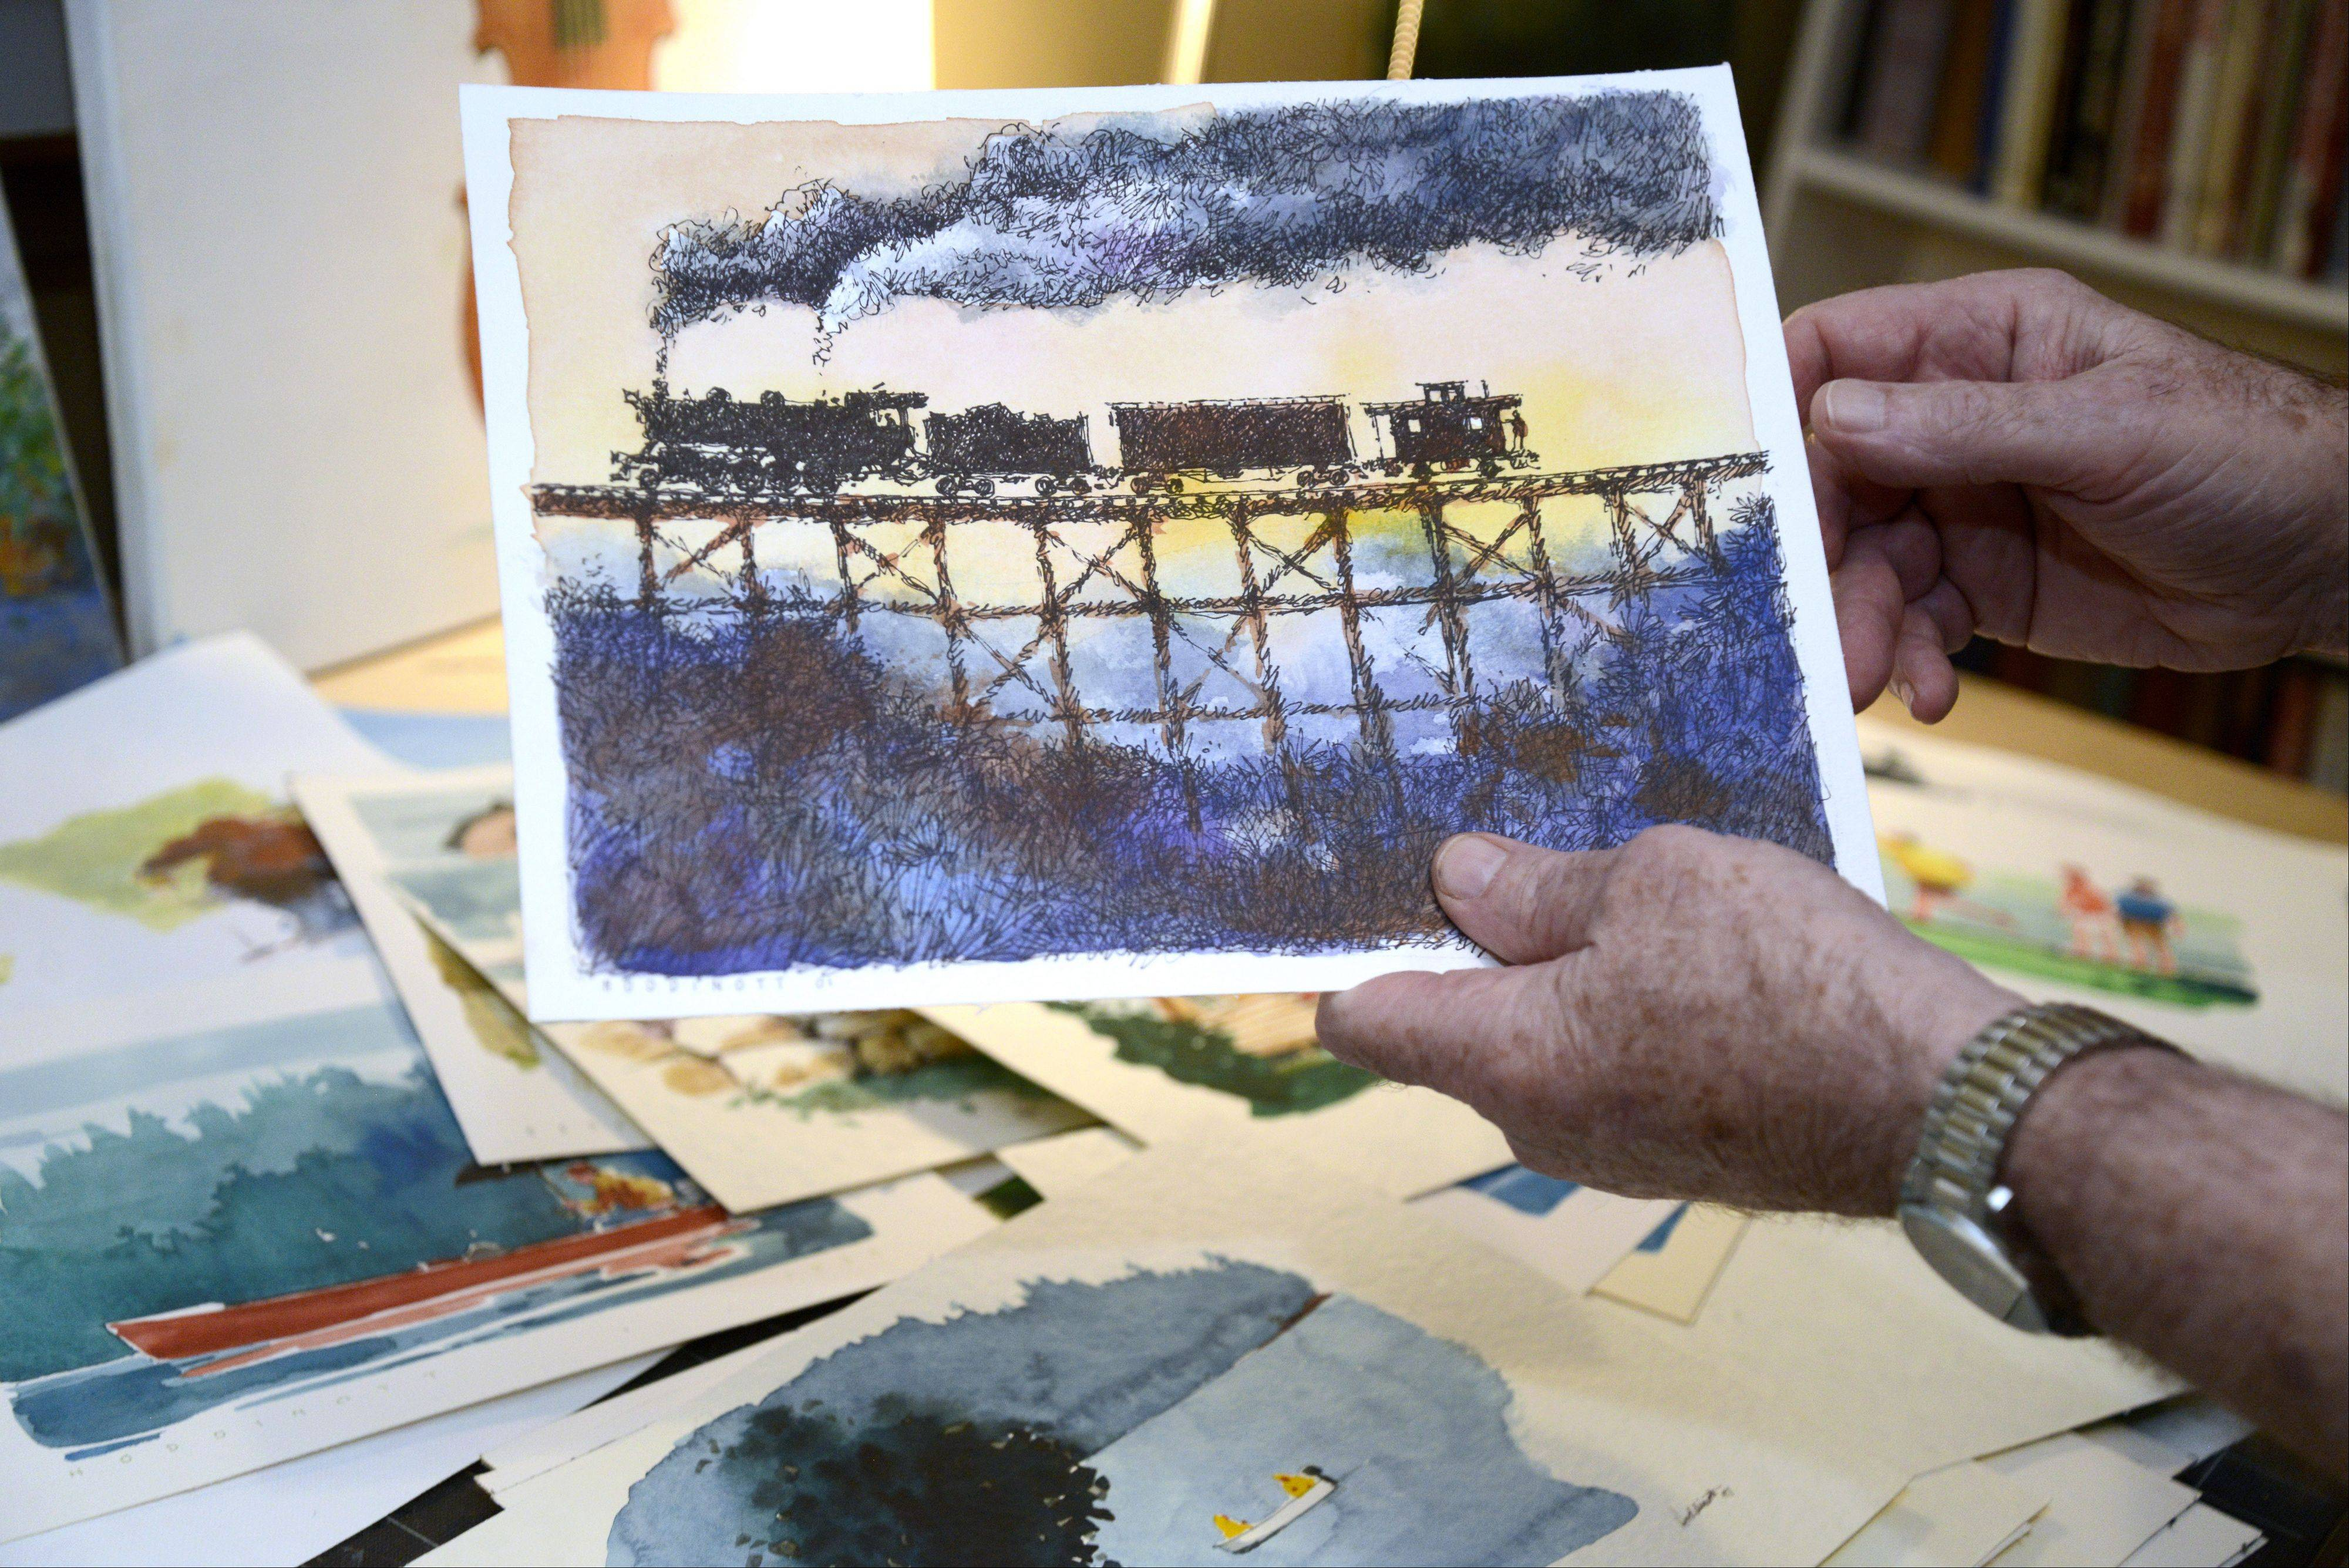 Bert Hoddinott Jr. of St. Charles now has his work displayed in a coffee-table book.